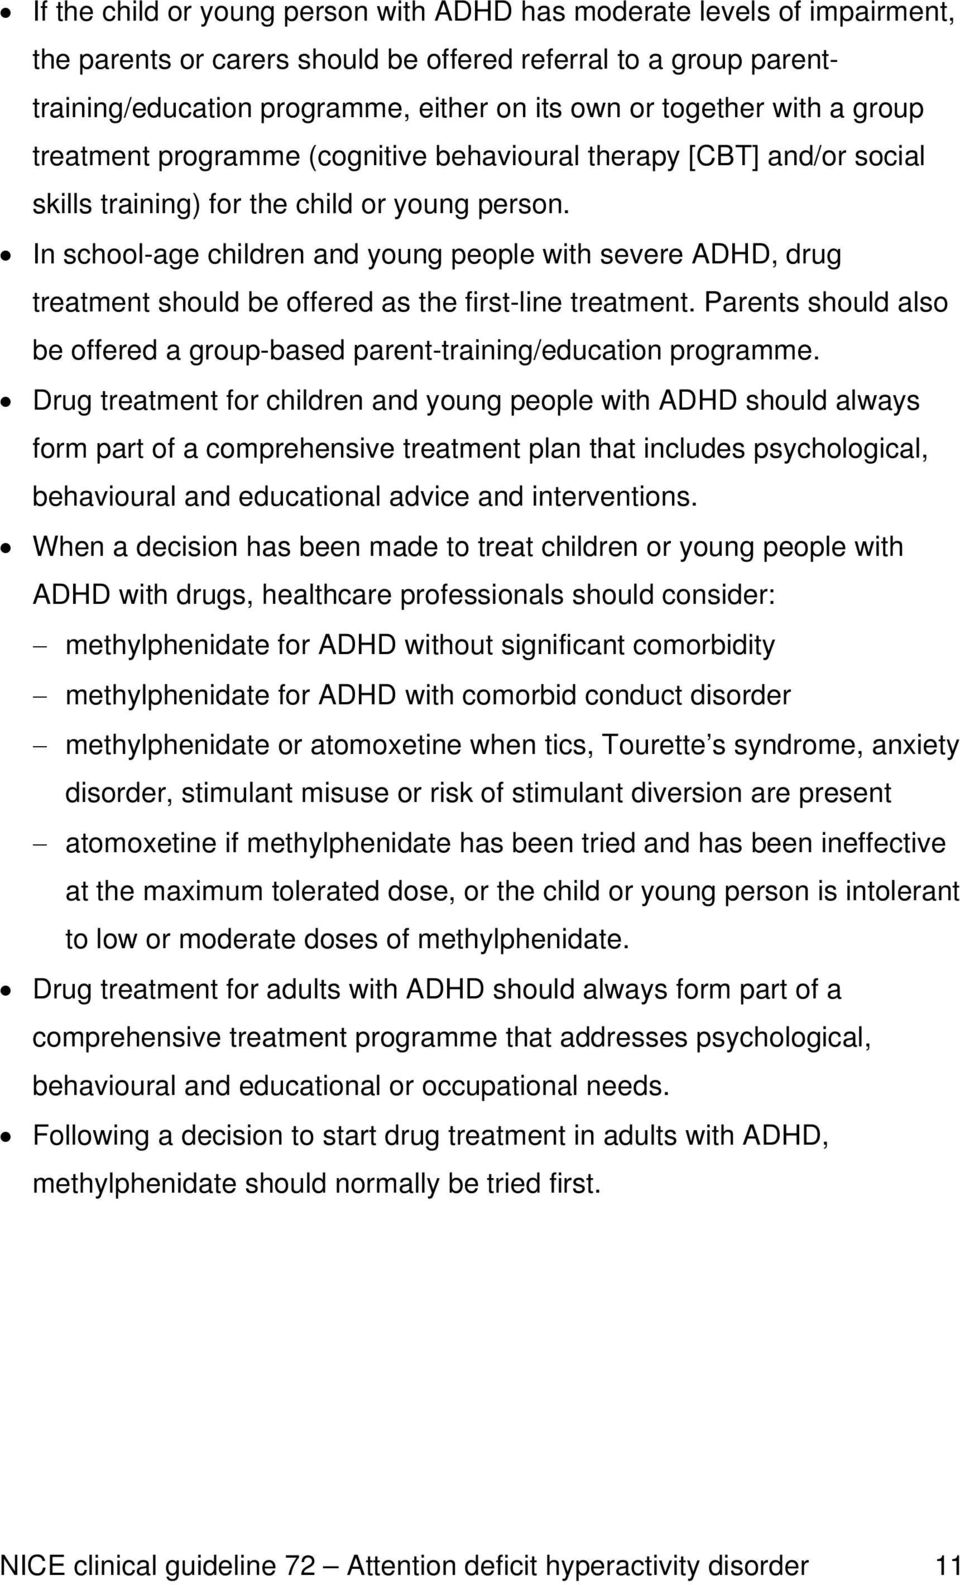 In school-age children and young people with severe ADHD, drug treatment should be offered as the first-line treatment.